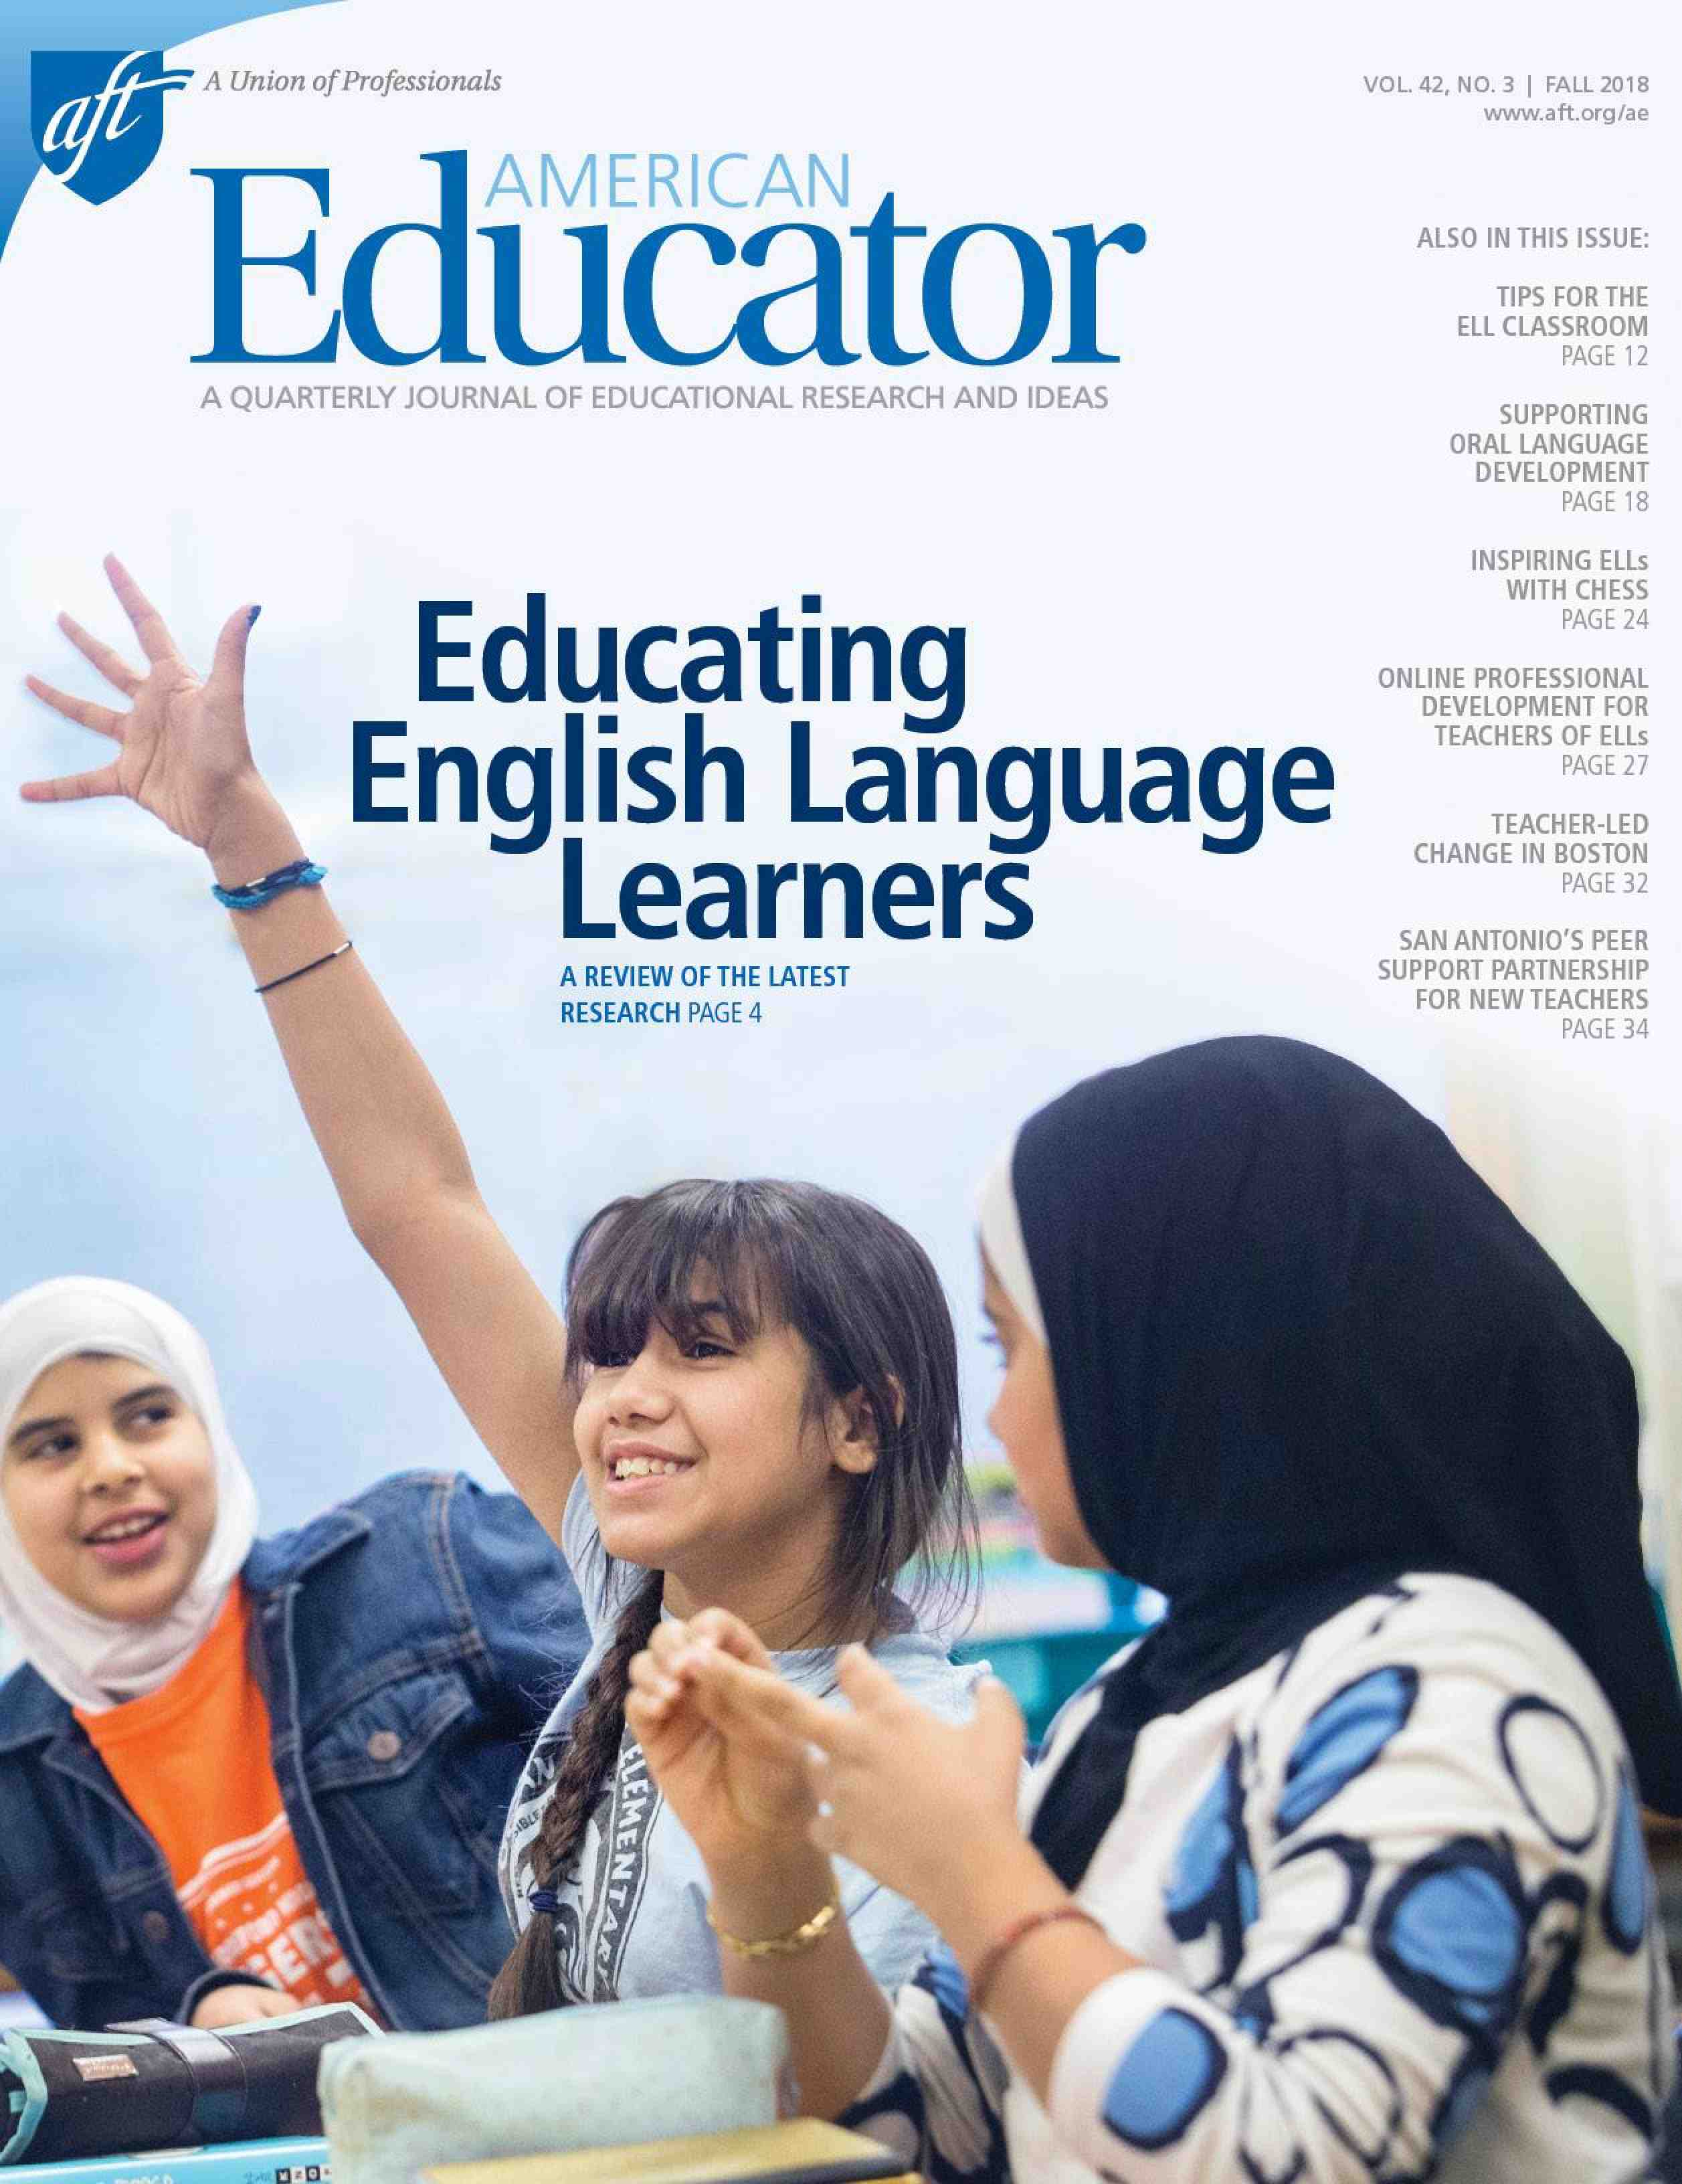 American Educator, Fall 2018